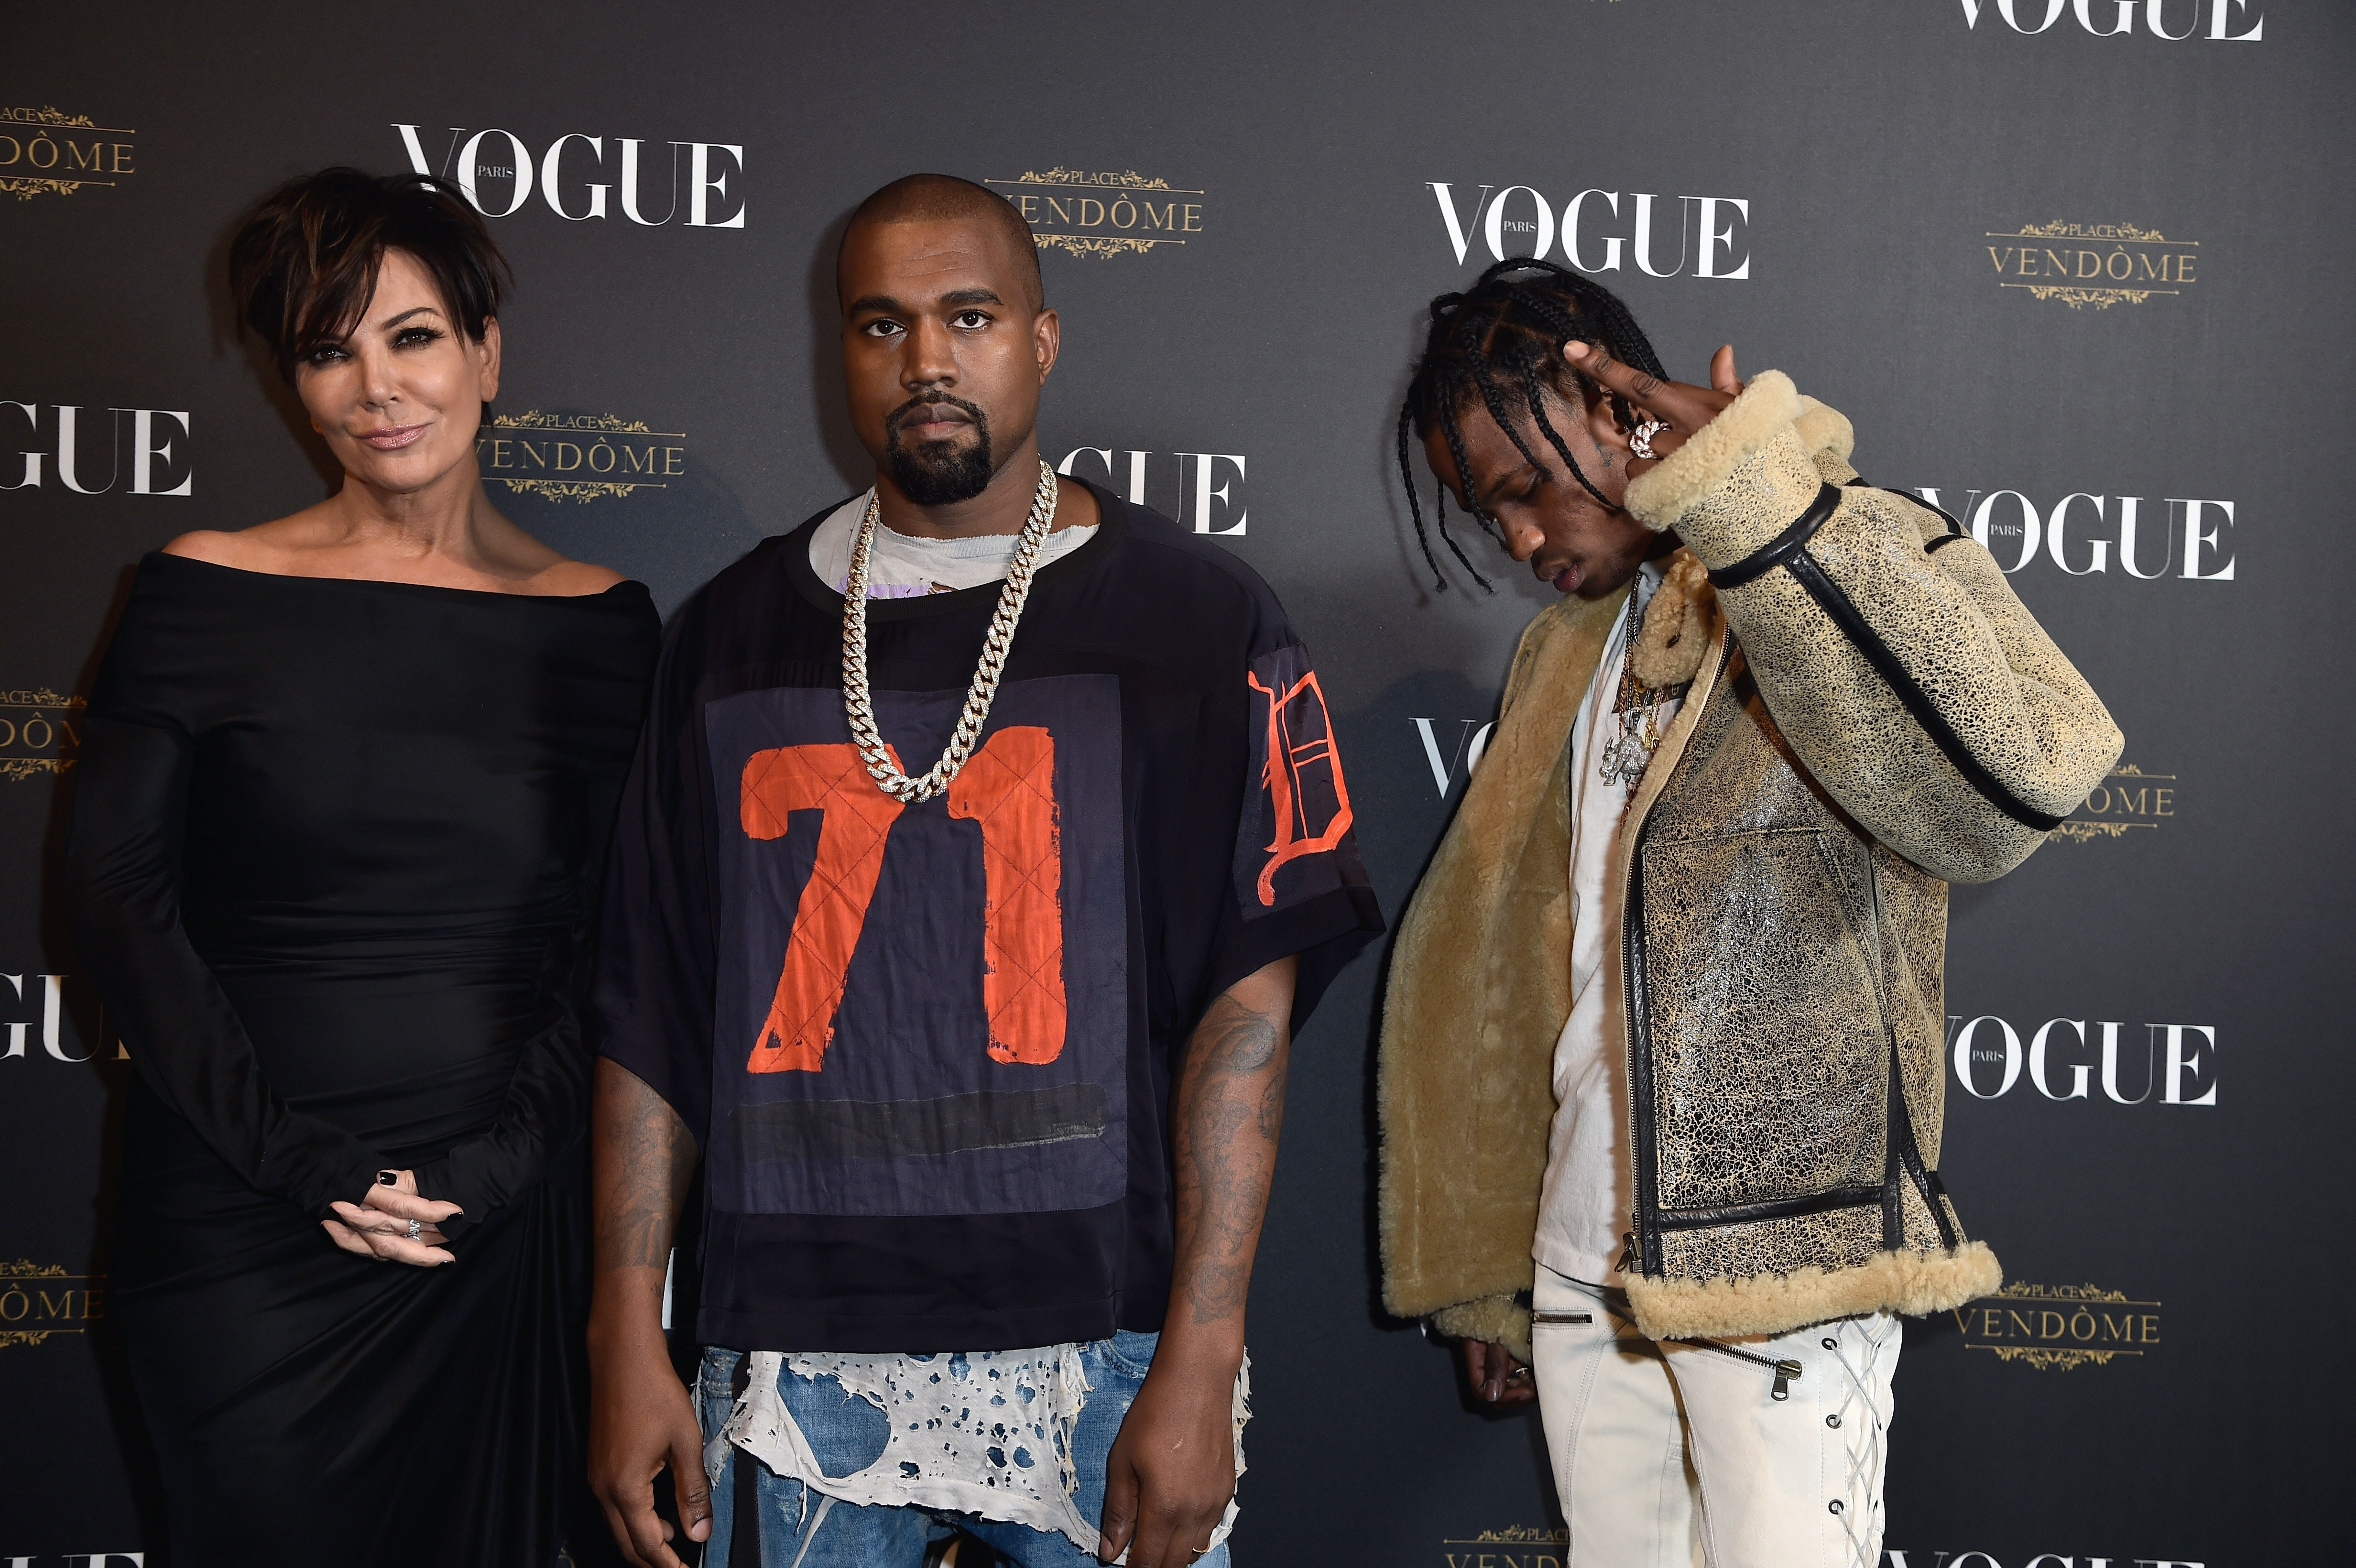 f2fe6dd4e14b Are Kanye West & Travis Scott Friends? Here's What We Know